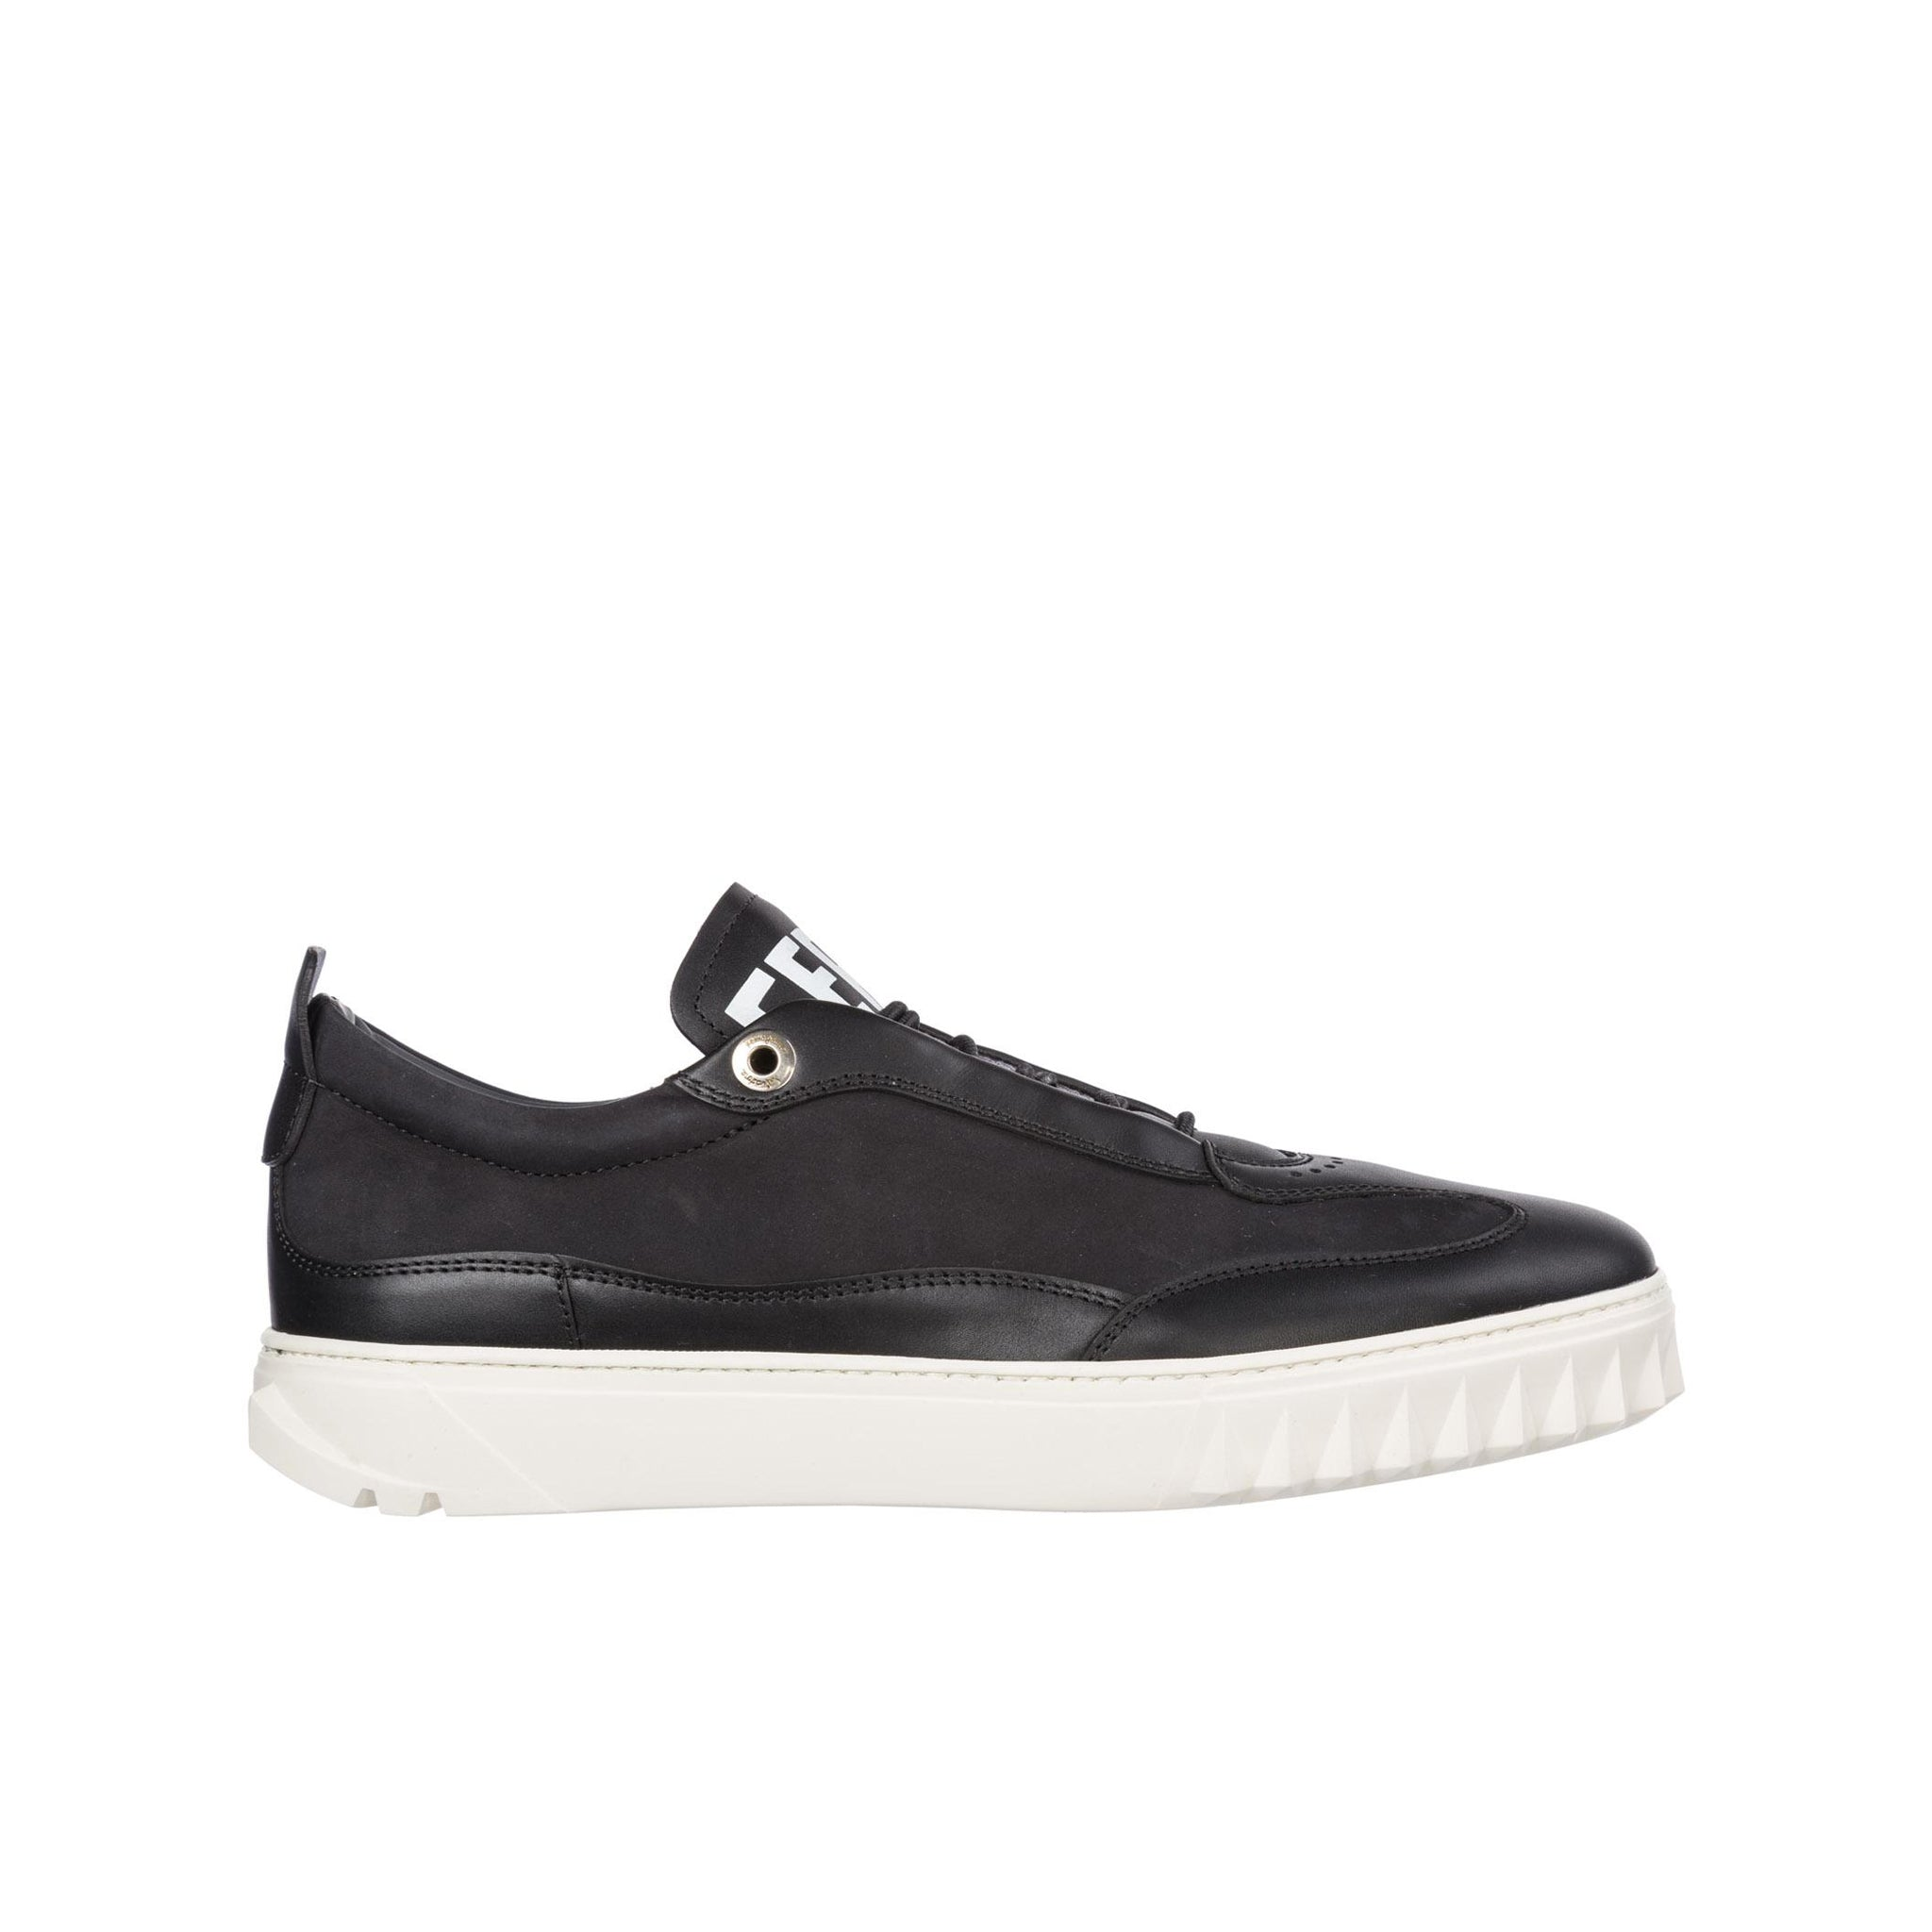 Salvatore Ferragamo Aaron Gancini Leather Sneakers